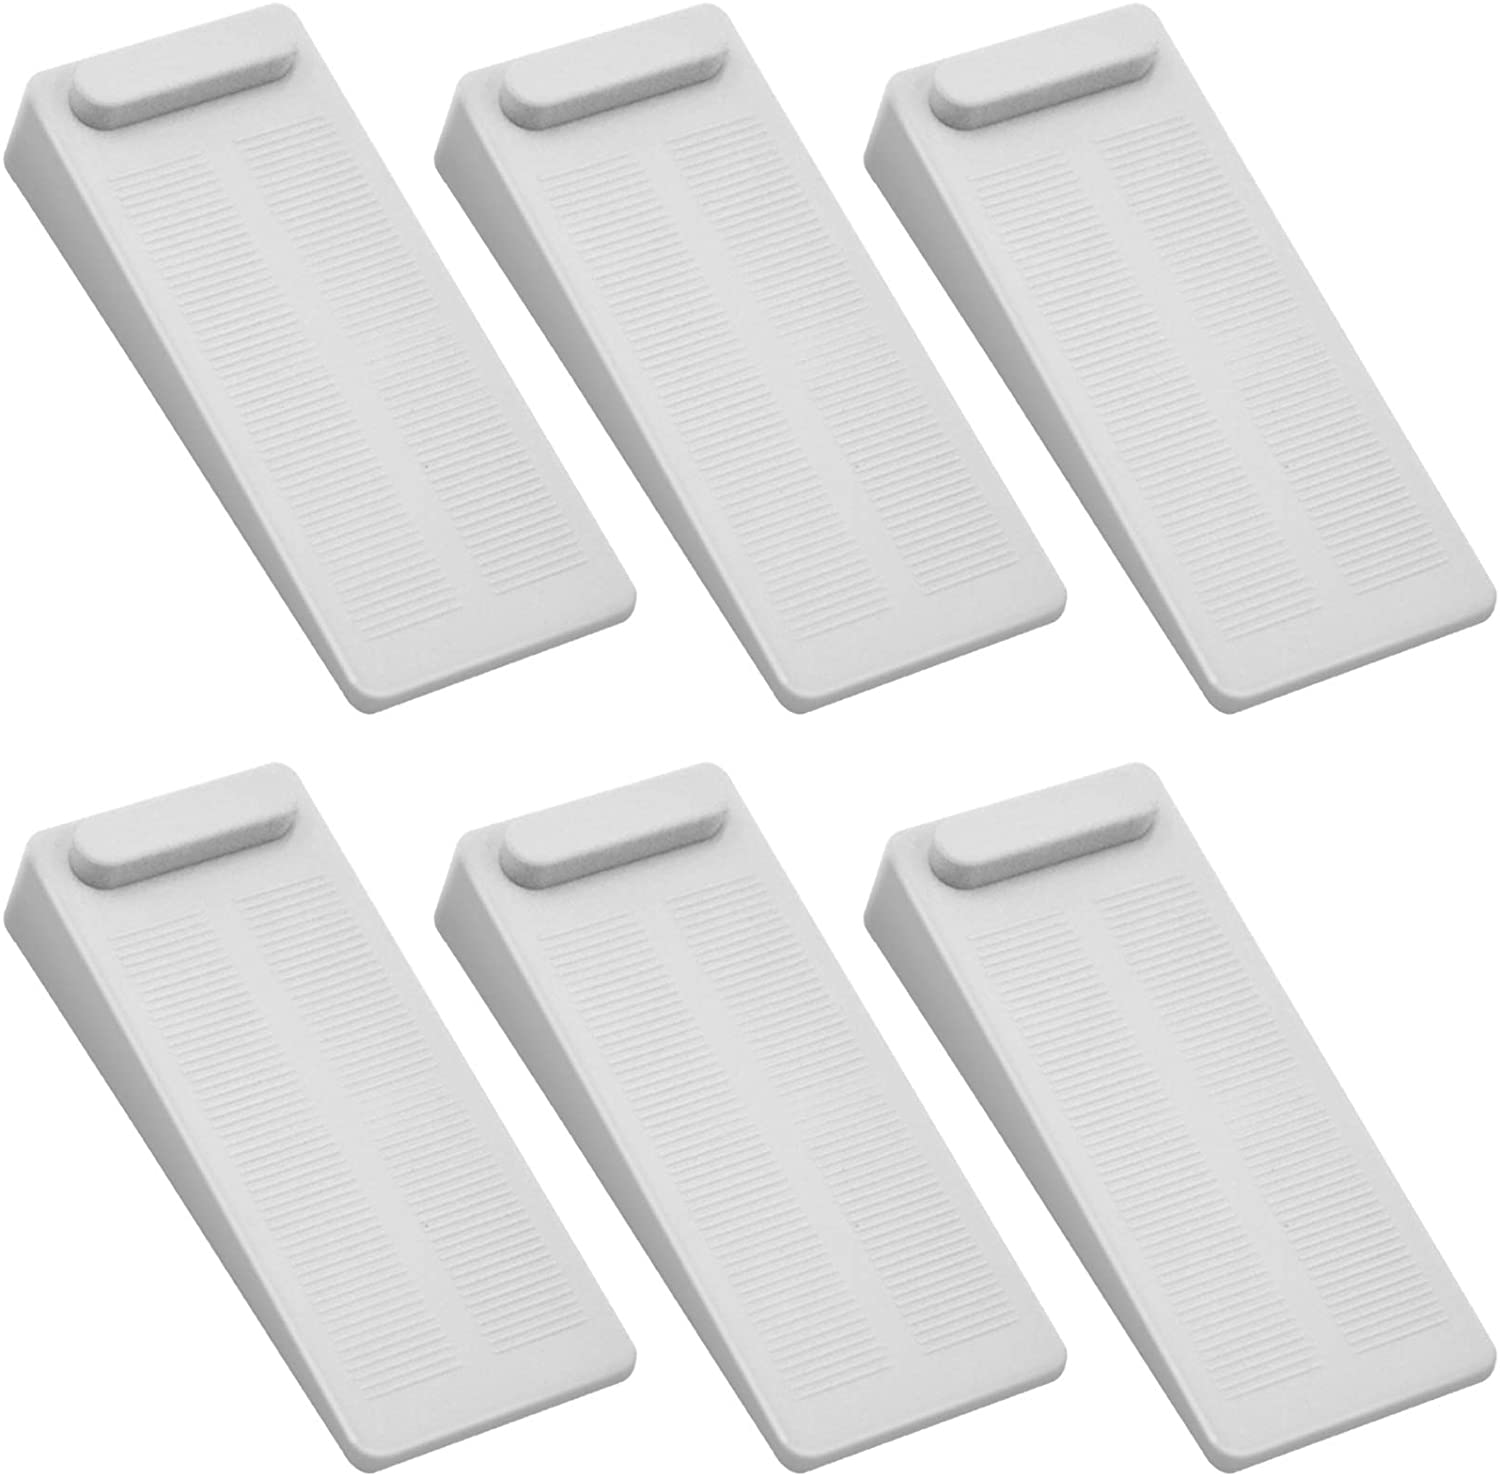 5% OFF Rubber Door Stoppers 6 Pack Heigh Adjustable Duty Directly managed store Heavy No-Slip